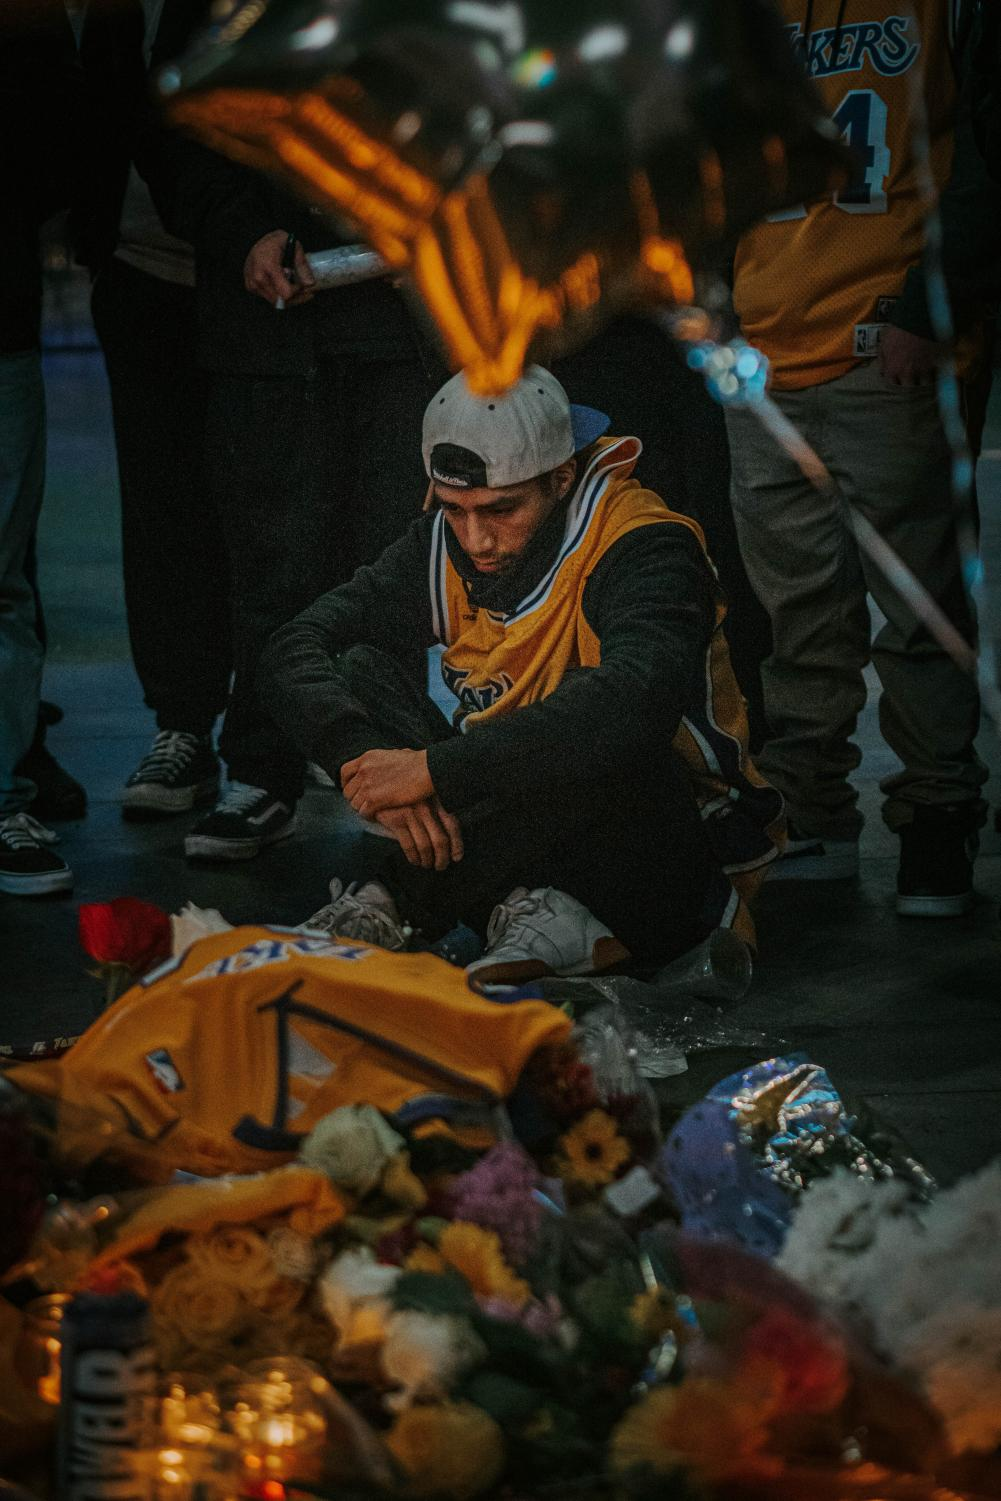 People in LA gather together in front of Staples Center to mourn the death of Kobe Bryant